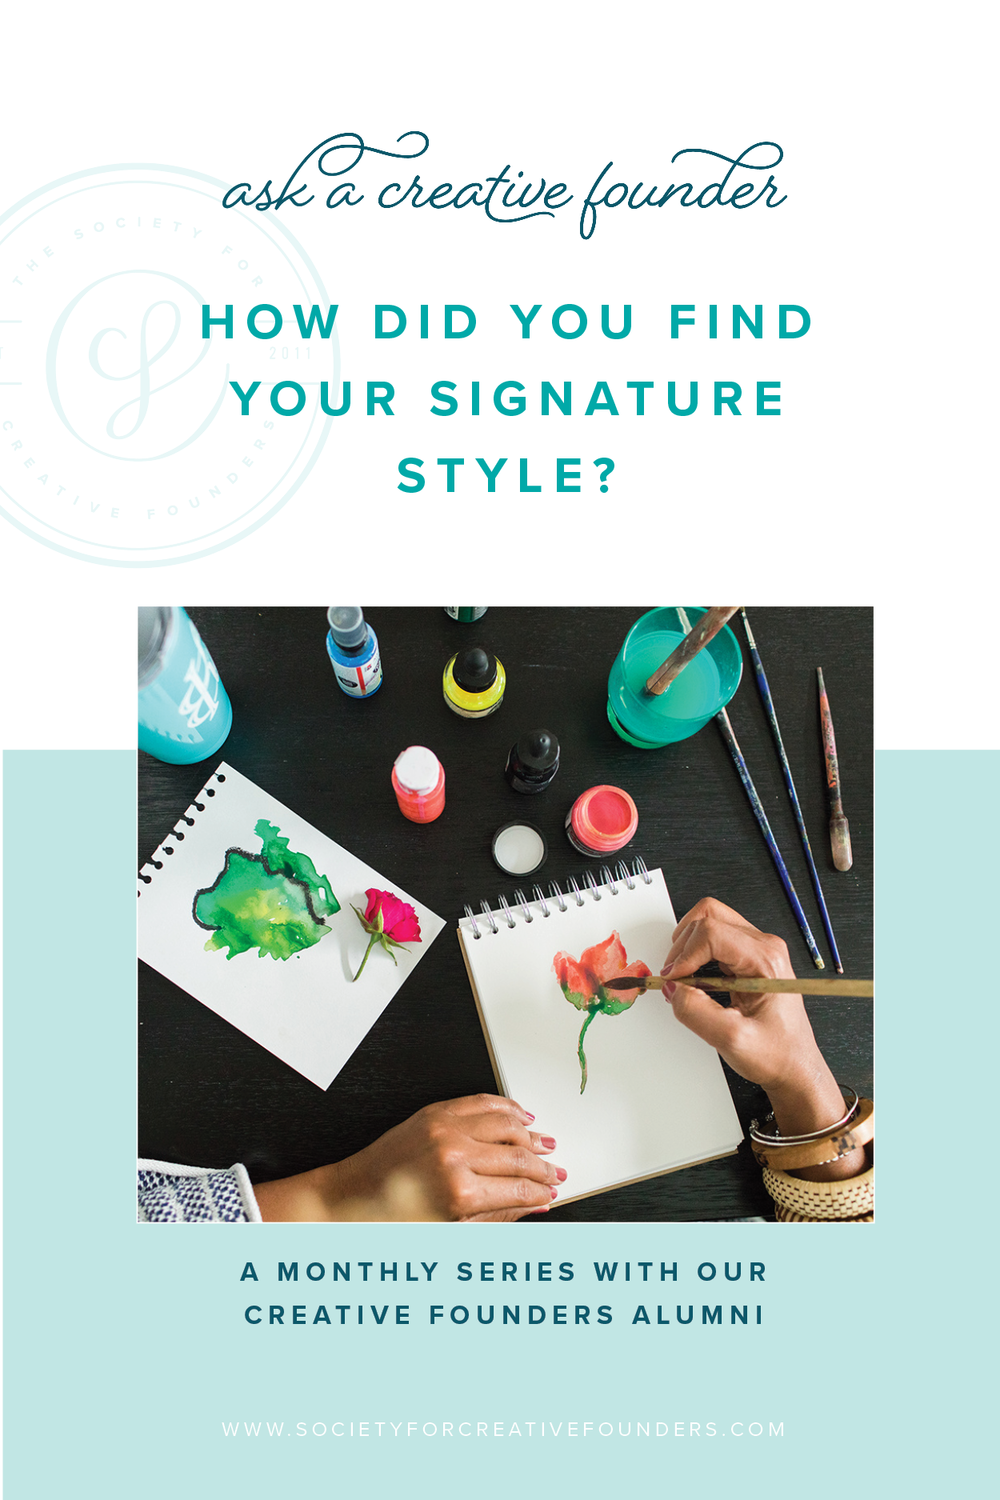 Ask a Creative Founder - How Did You Find Your Signature Style?